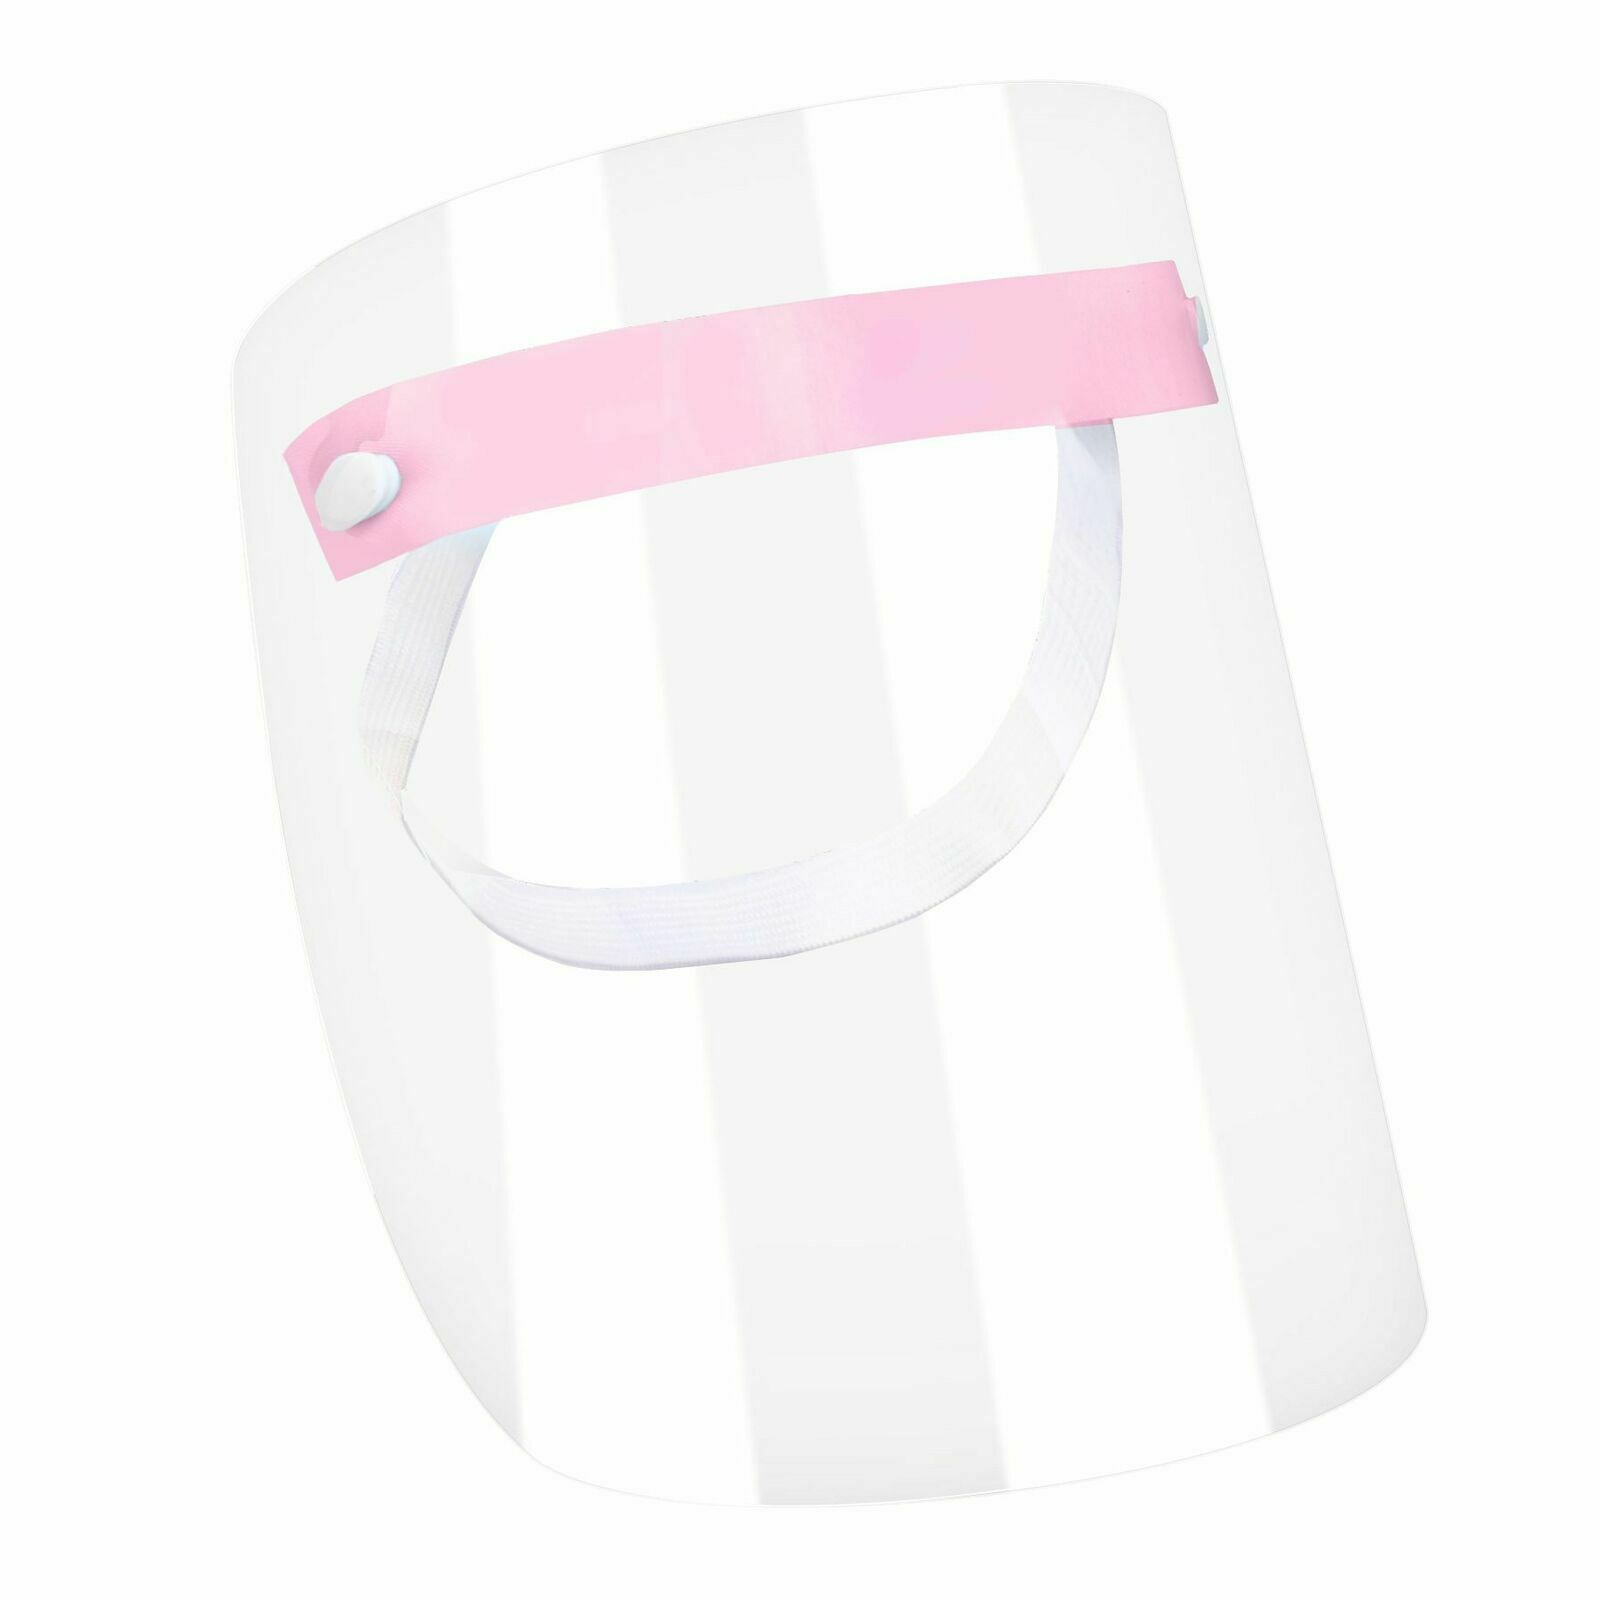 1/10 Pcs Anti-fog Adjustable Full Face Shield Protective Saliva-proof Reusable Outdoor Personal Protection Cover